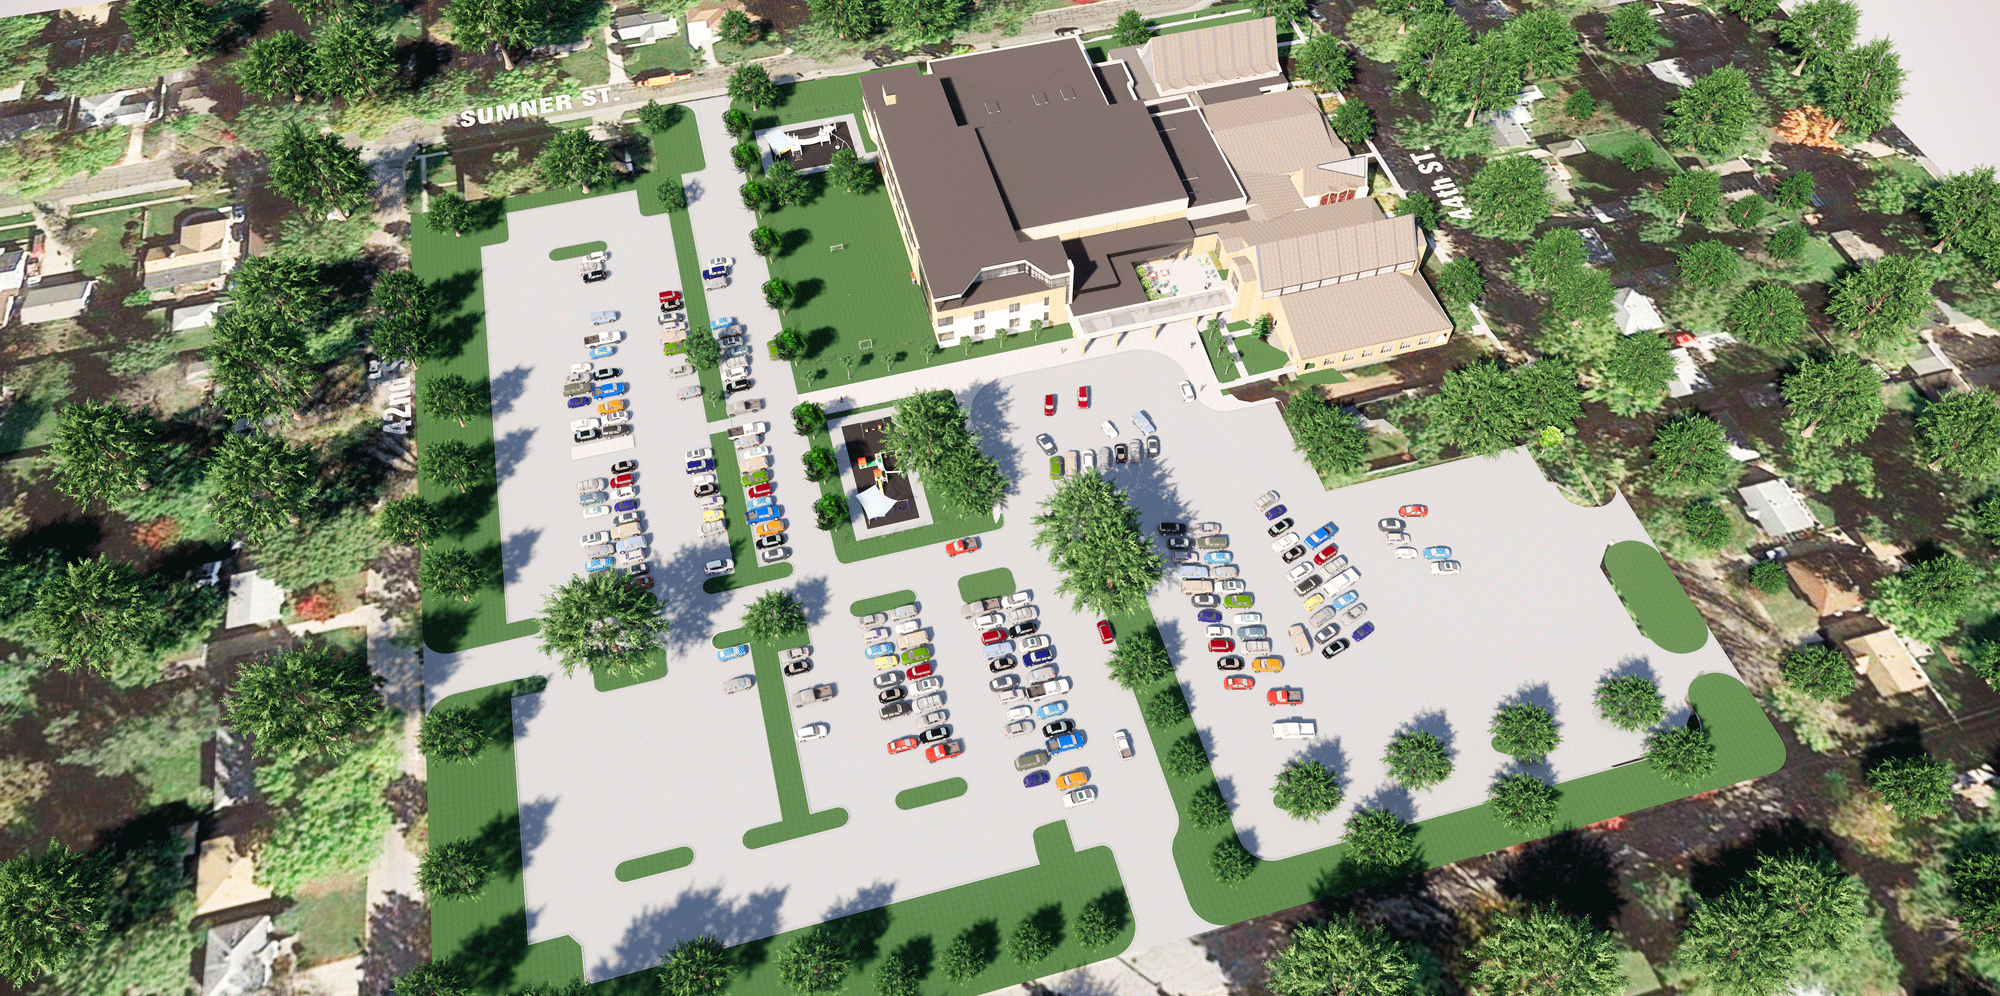 Site Overview